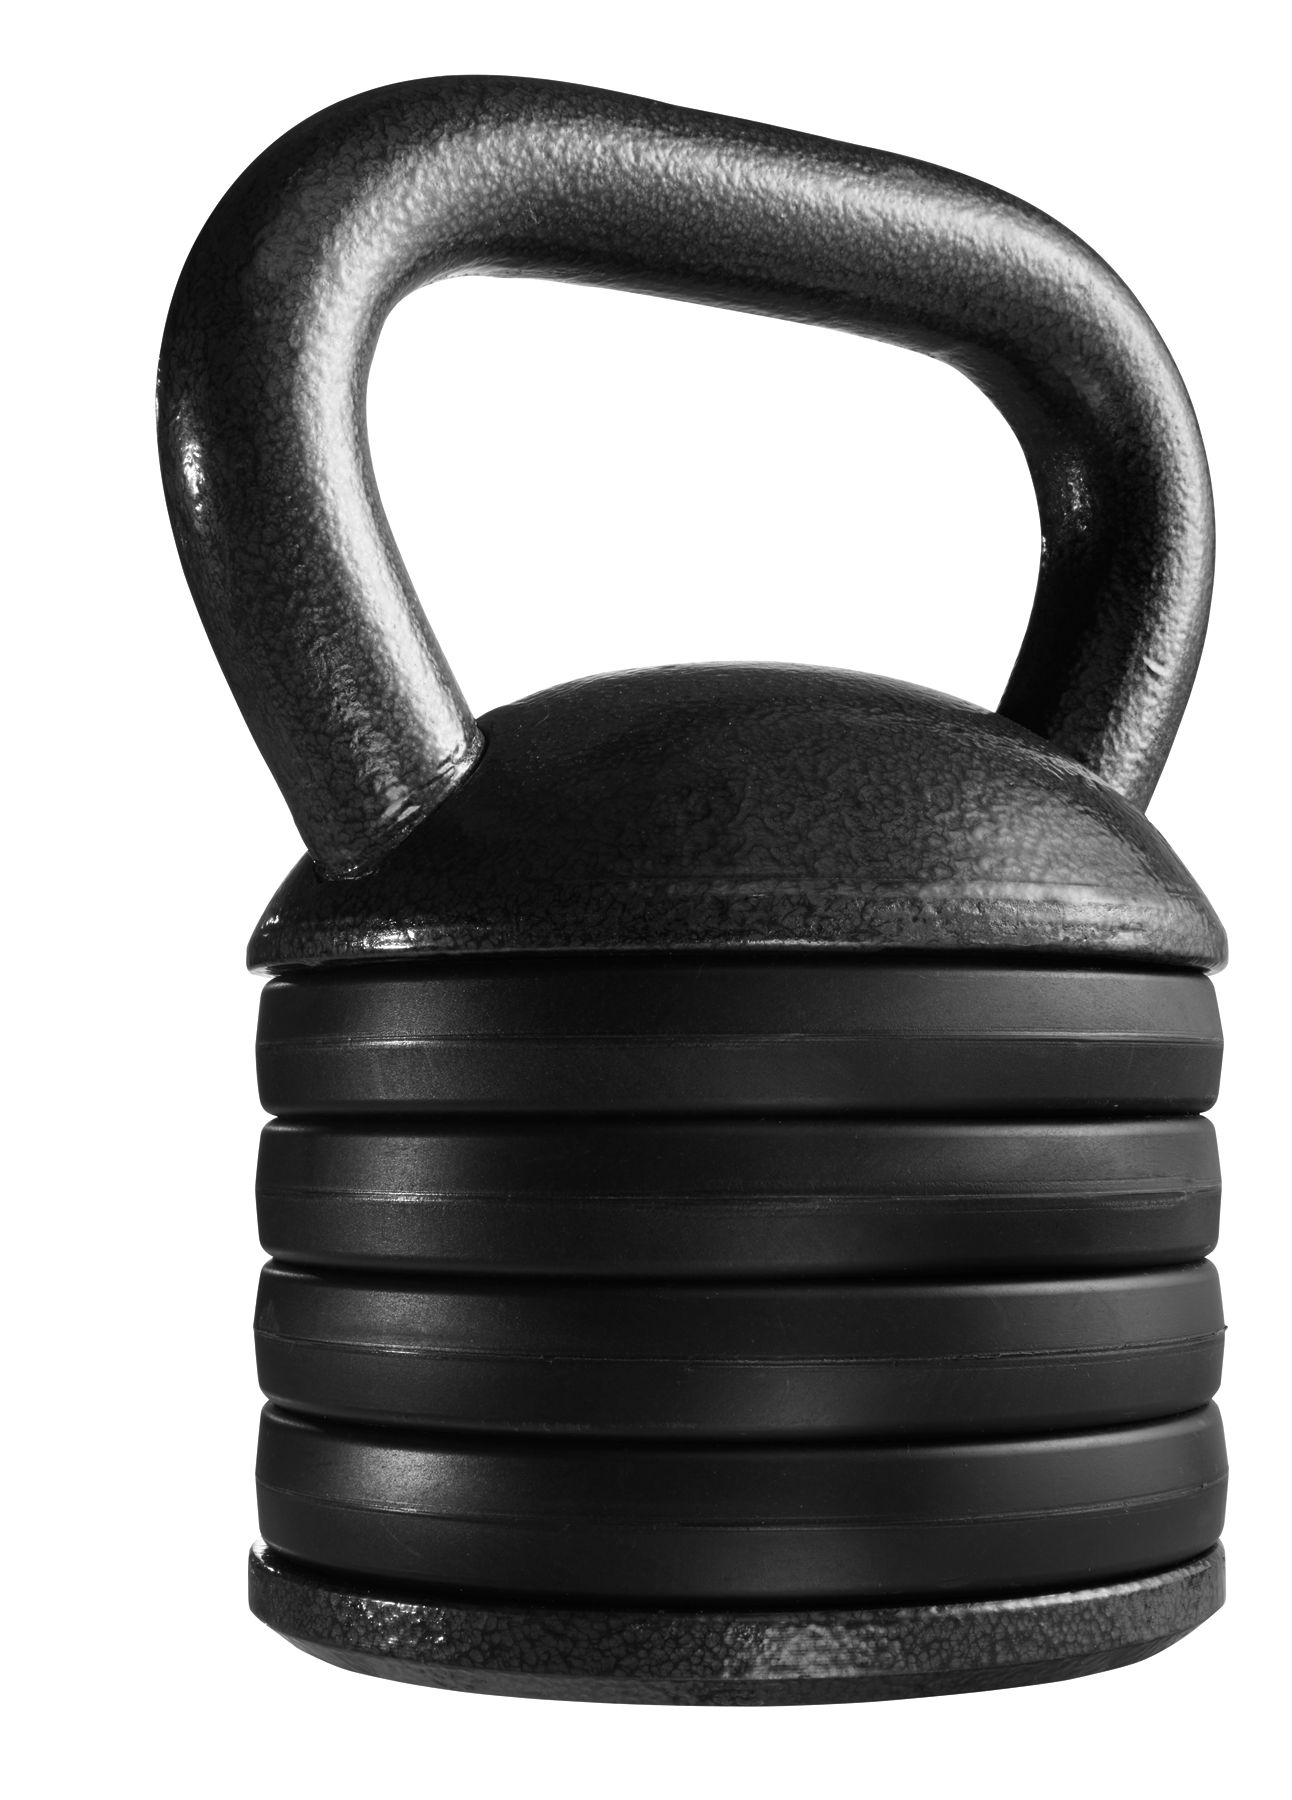 product image fitness gear adjustable kettlebell